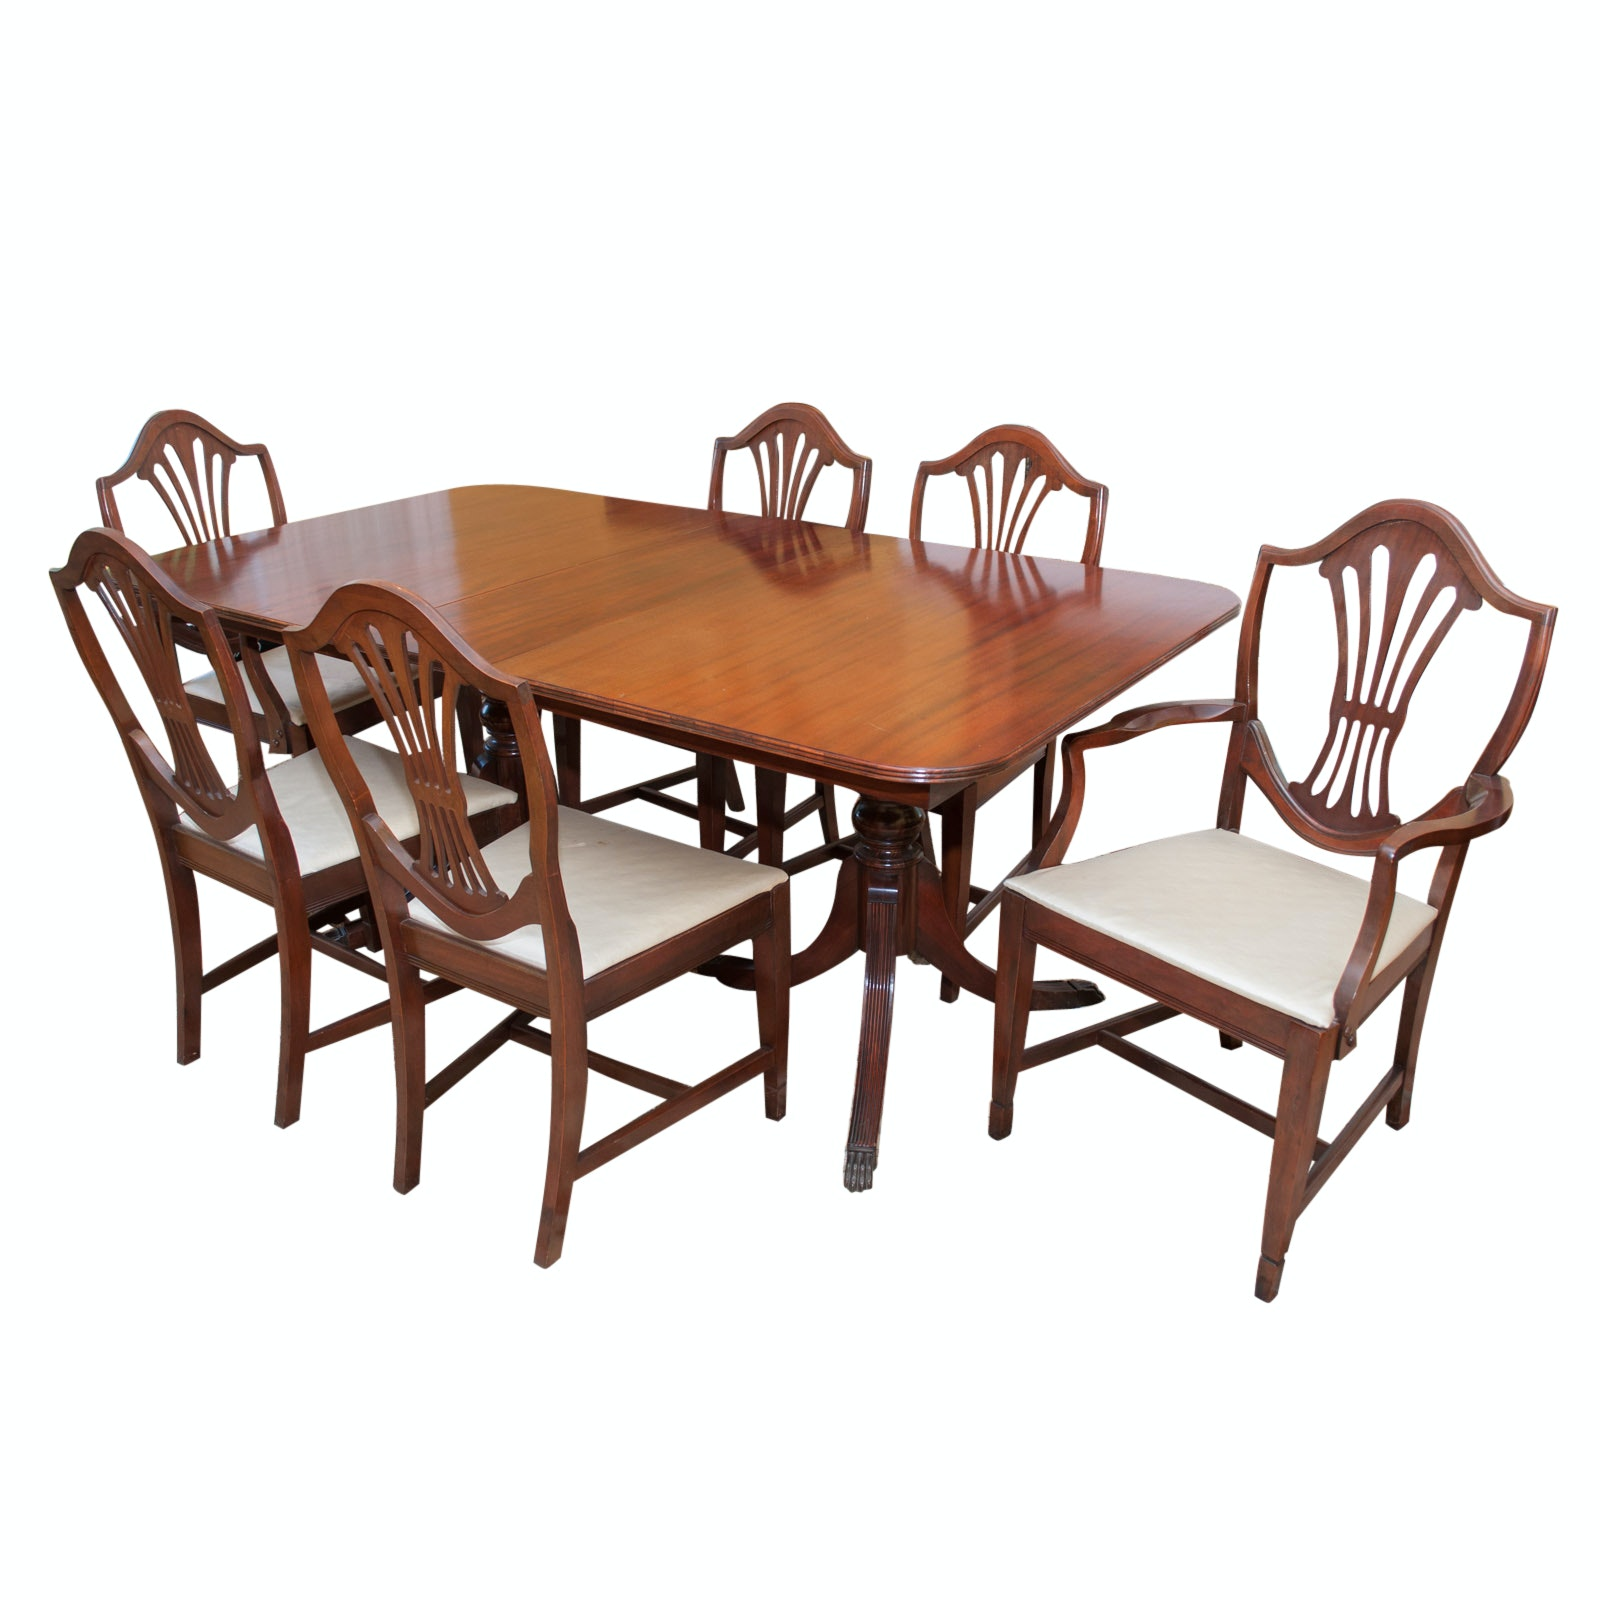 Hepplewhite-Style Extension Dining Table with Chairs